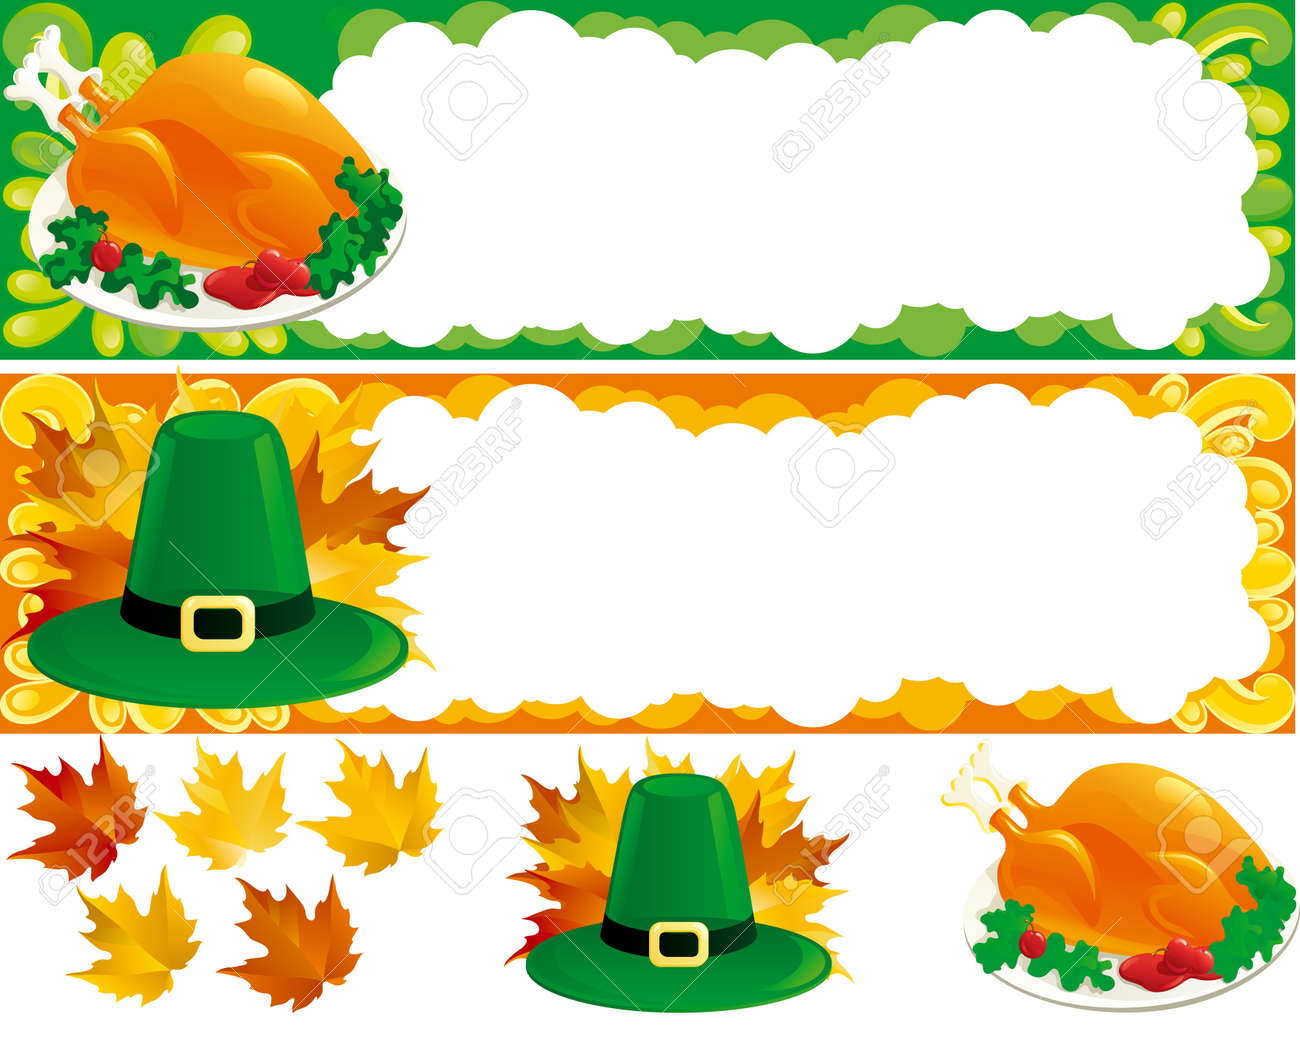 Two web banners for thanksgiving. Hat, Turkey-cock and  autumn leaves. There are no meshes in this image. Stock Vector - 10544892